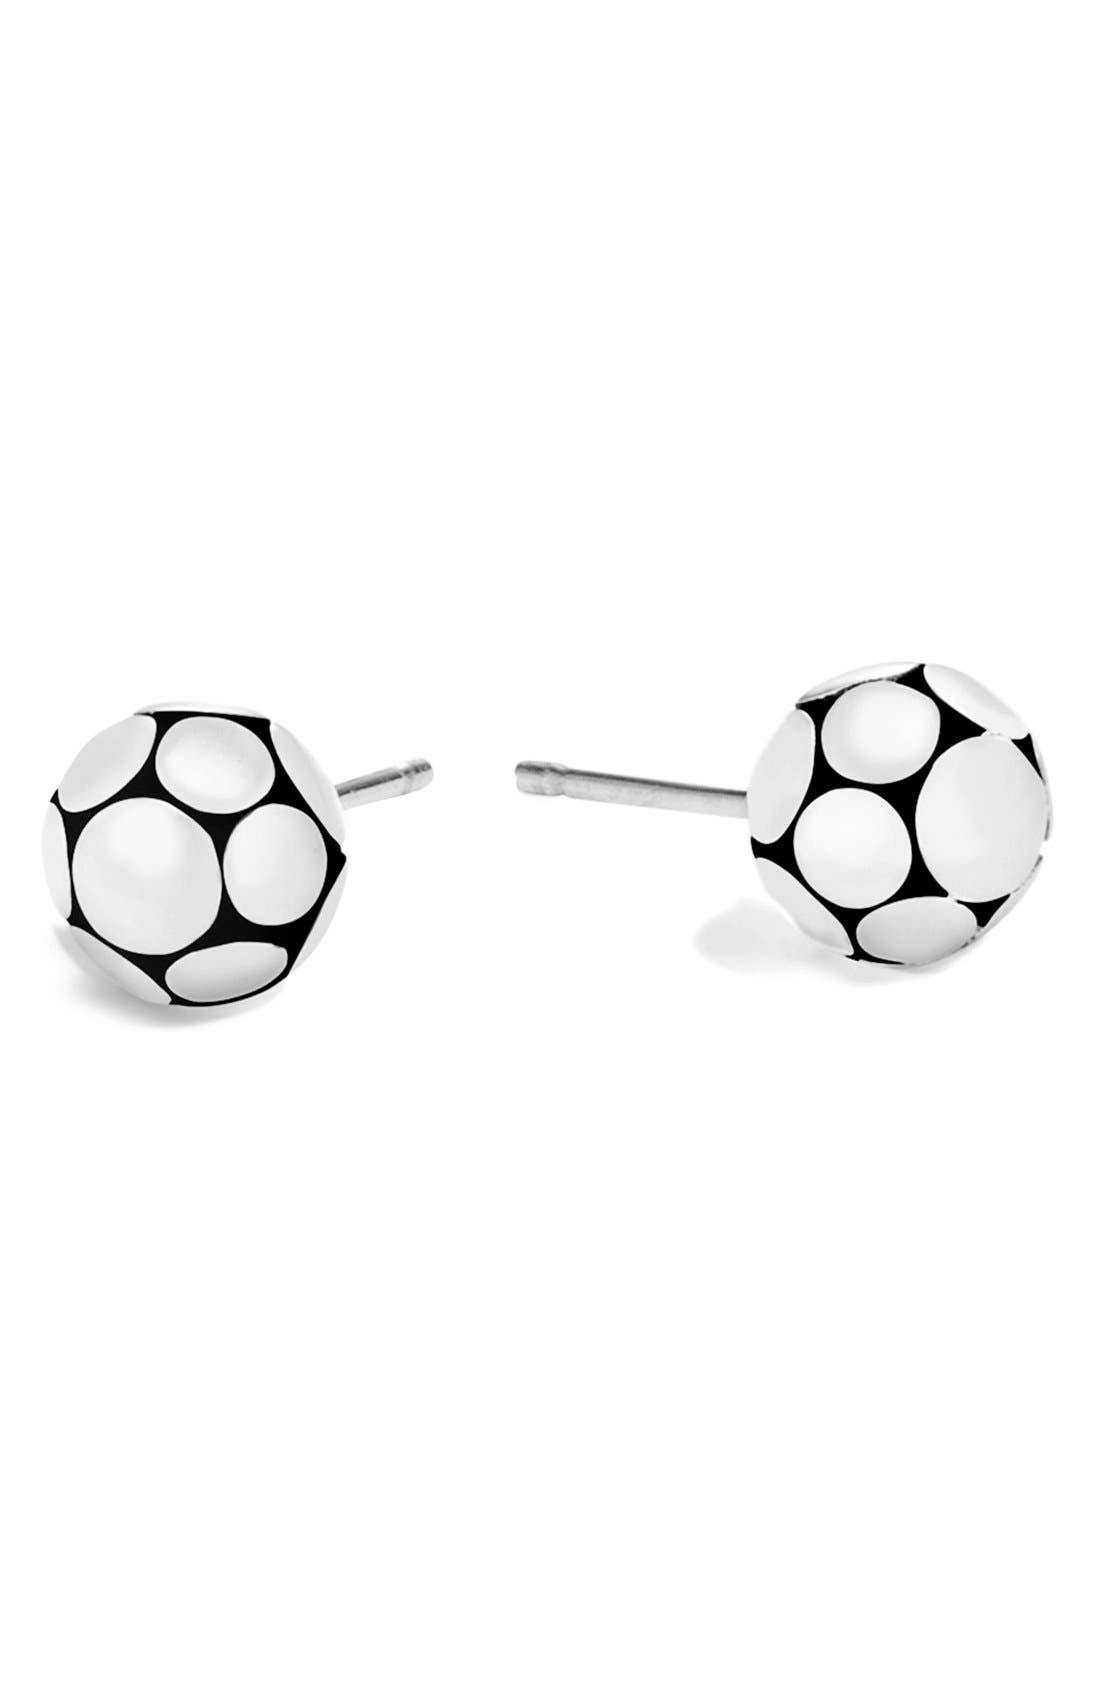 Main Image - John Hardy Dot Small Stud Earrings